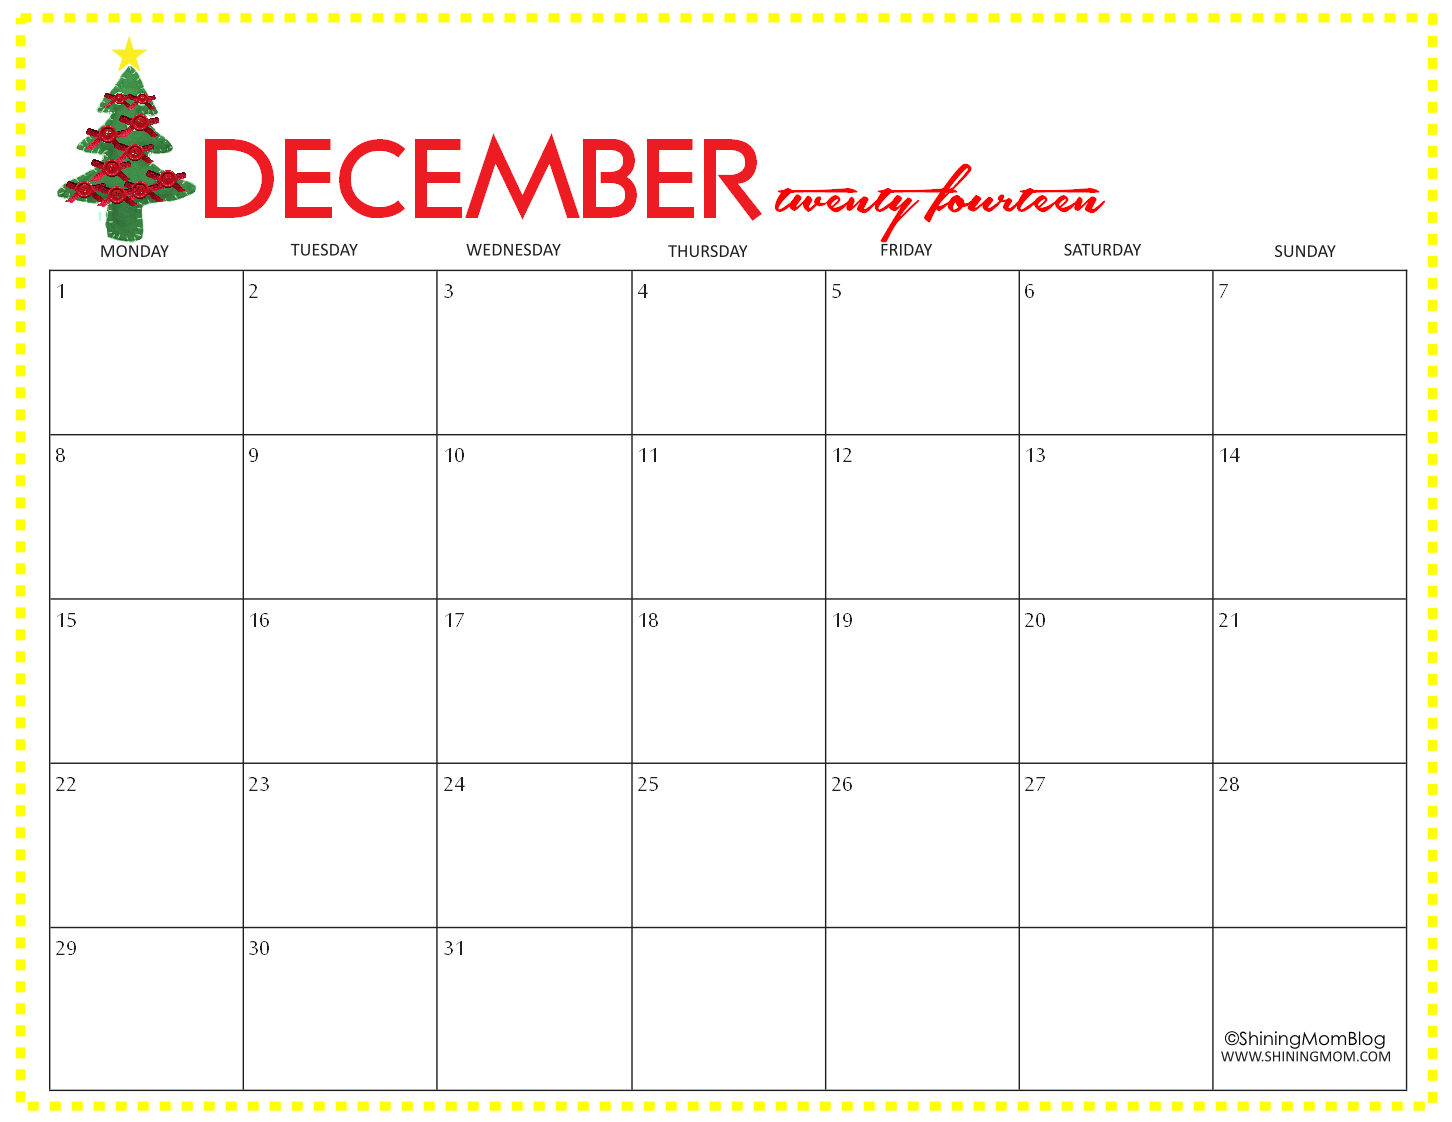 7 Images of Free Printable Christmas Calendar December 2014